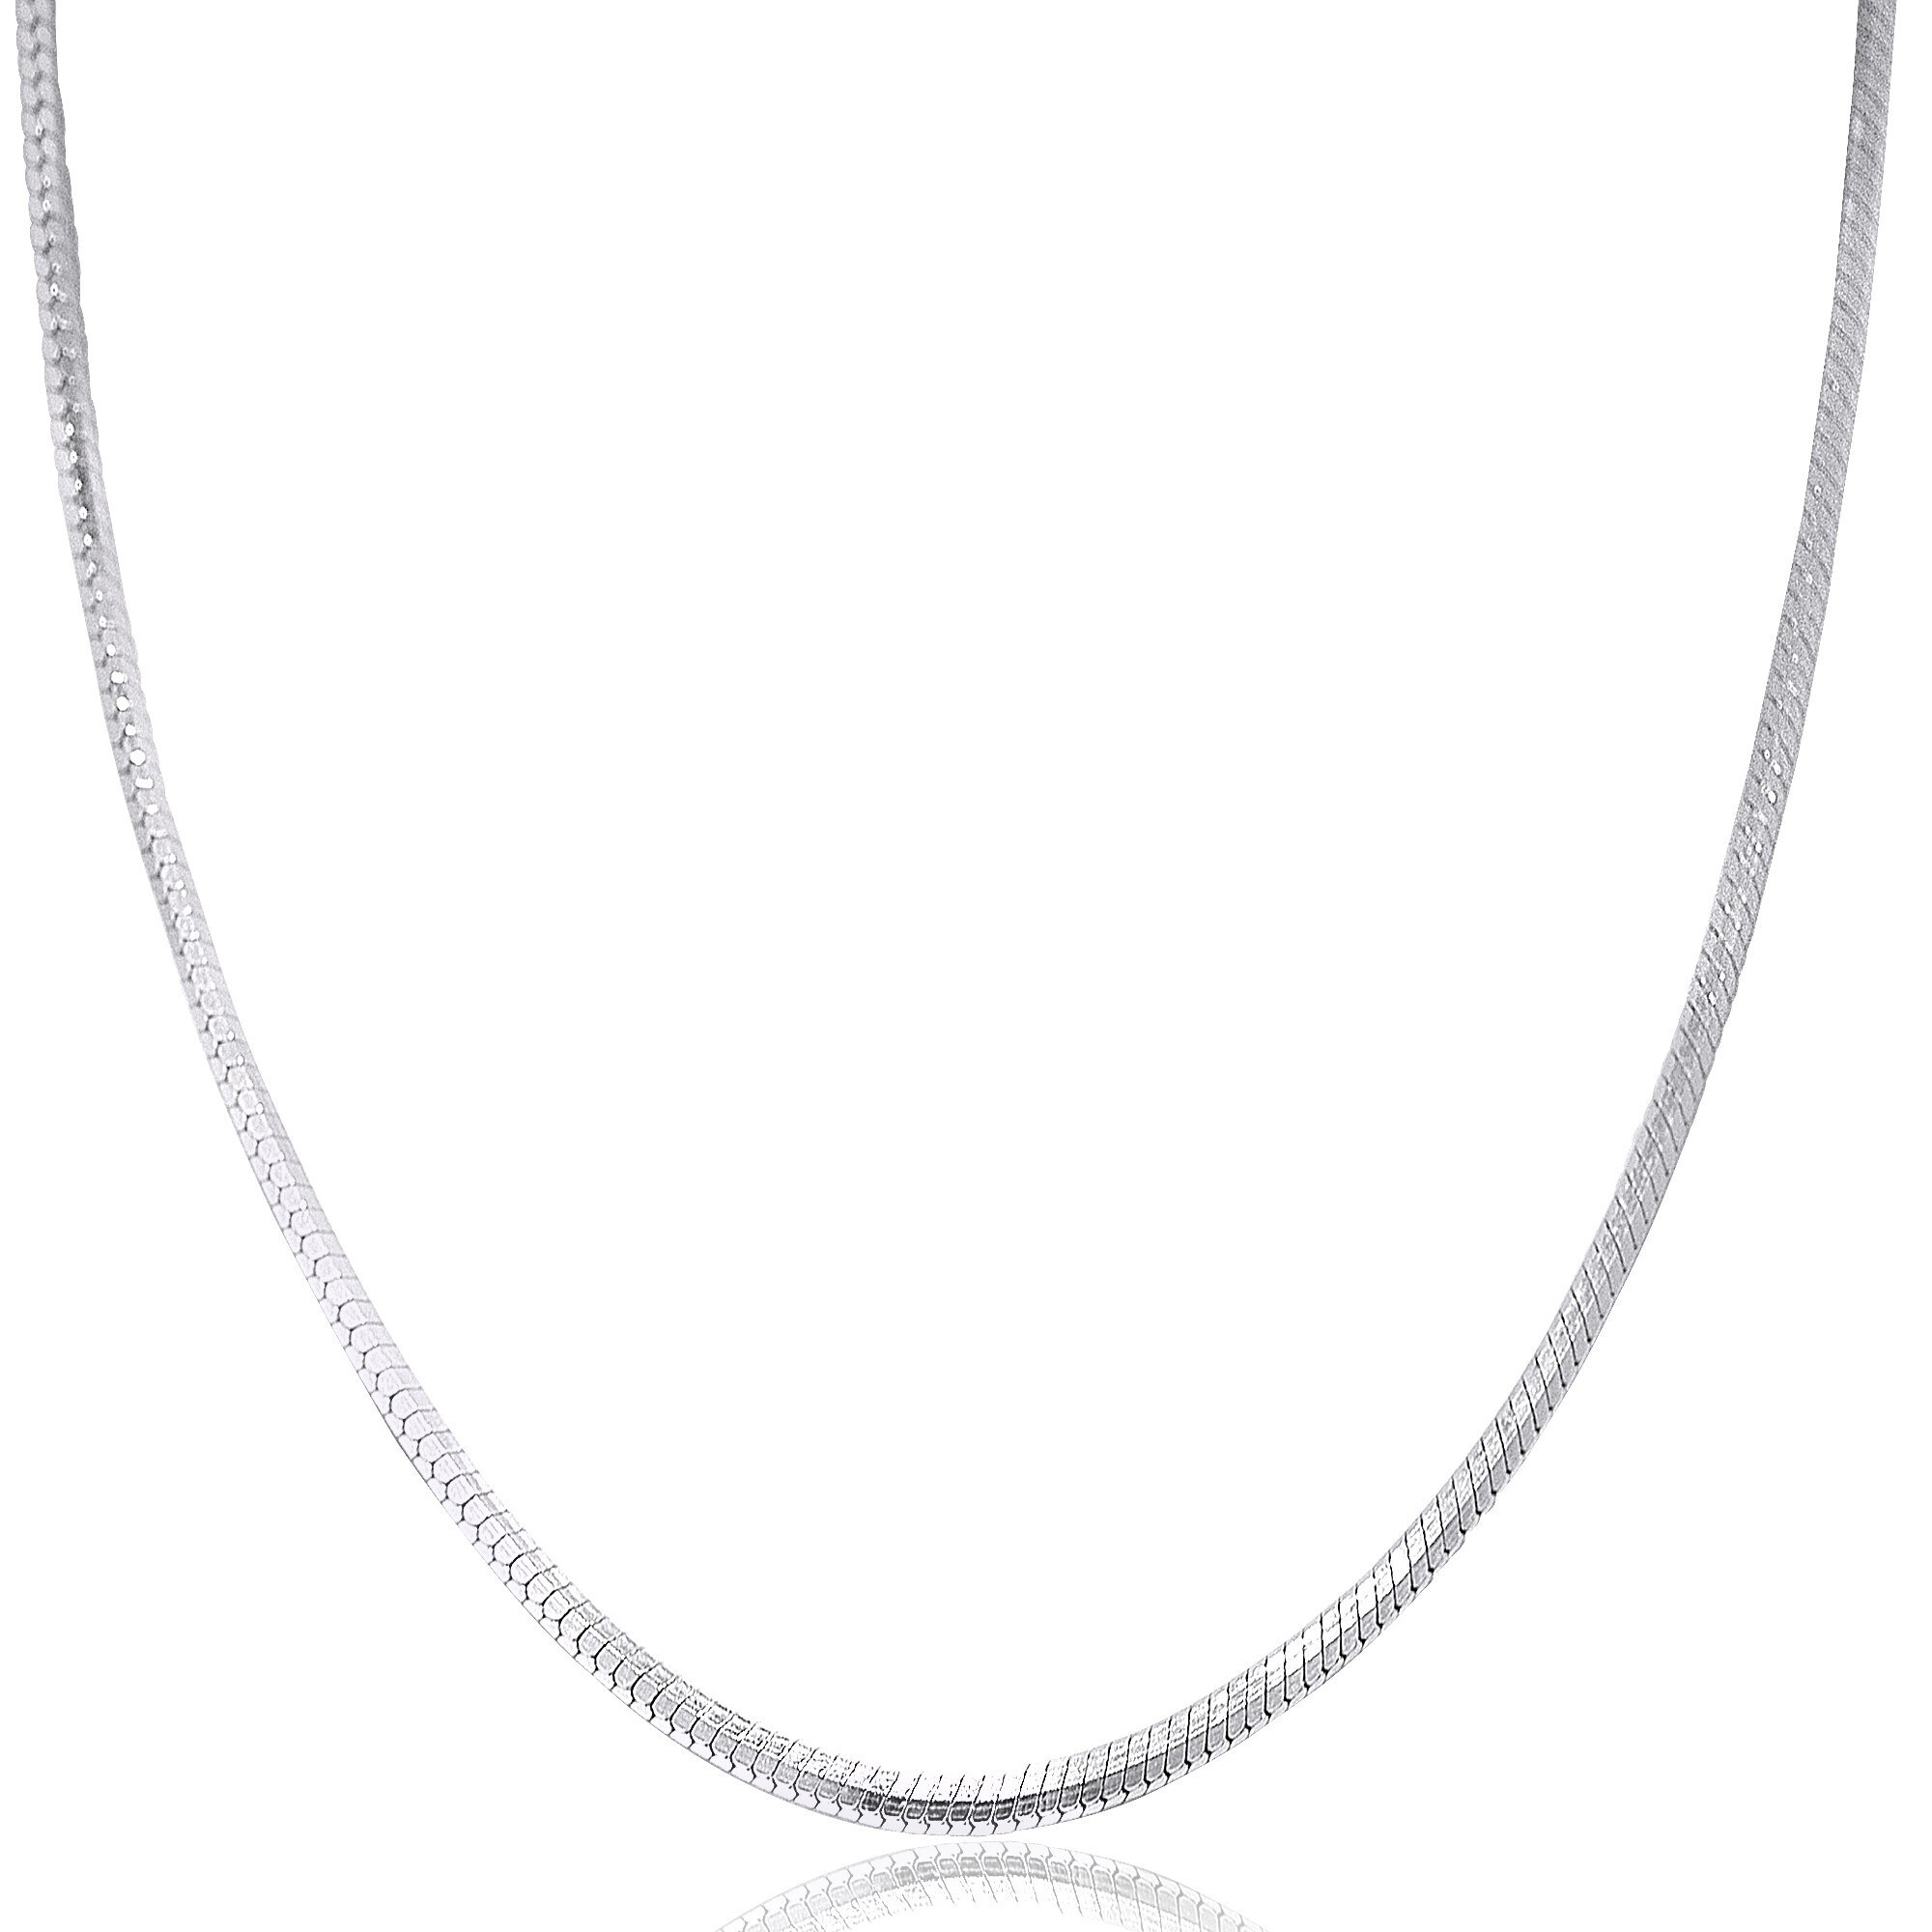 925 Italian Made Solid 925 Sterling Silver Snake Chain 40 cms